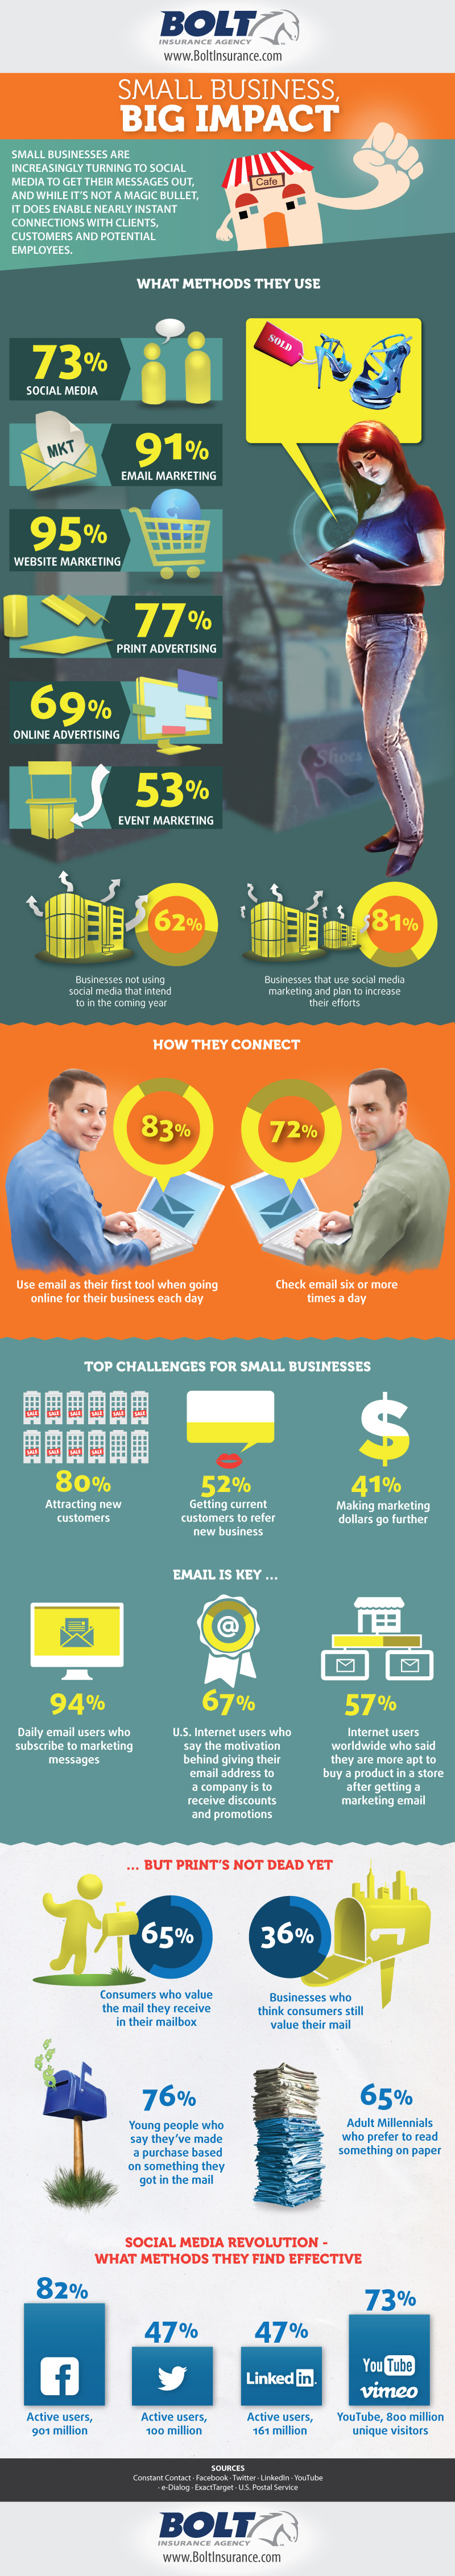 small-business-marketing-infographic